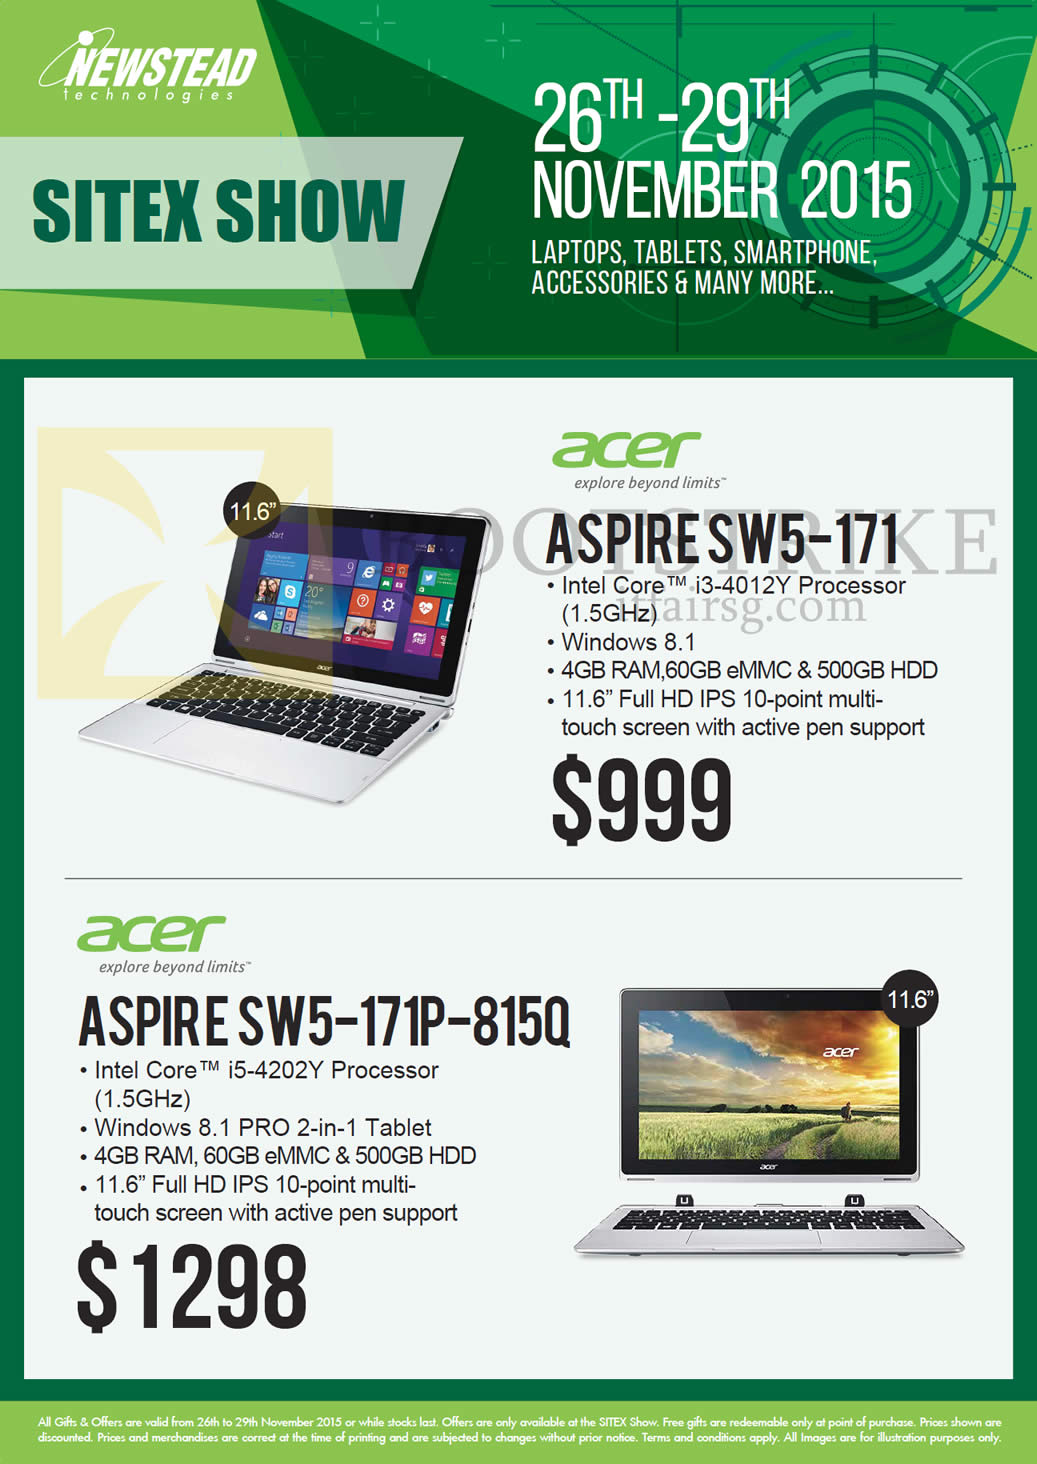 SITEX 2015 price list image brochure of Acer Newstead Notebooks Aspire, SW5-171, SW5-171P-815Q